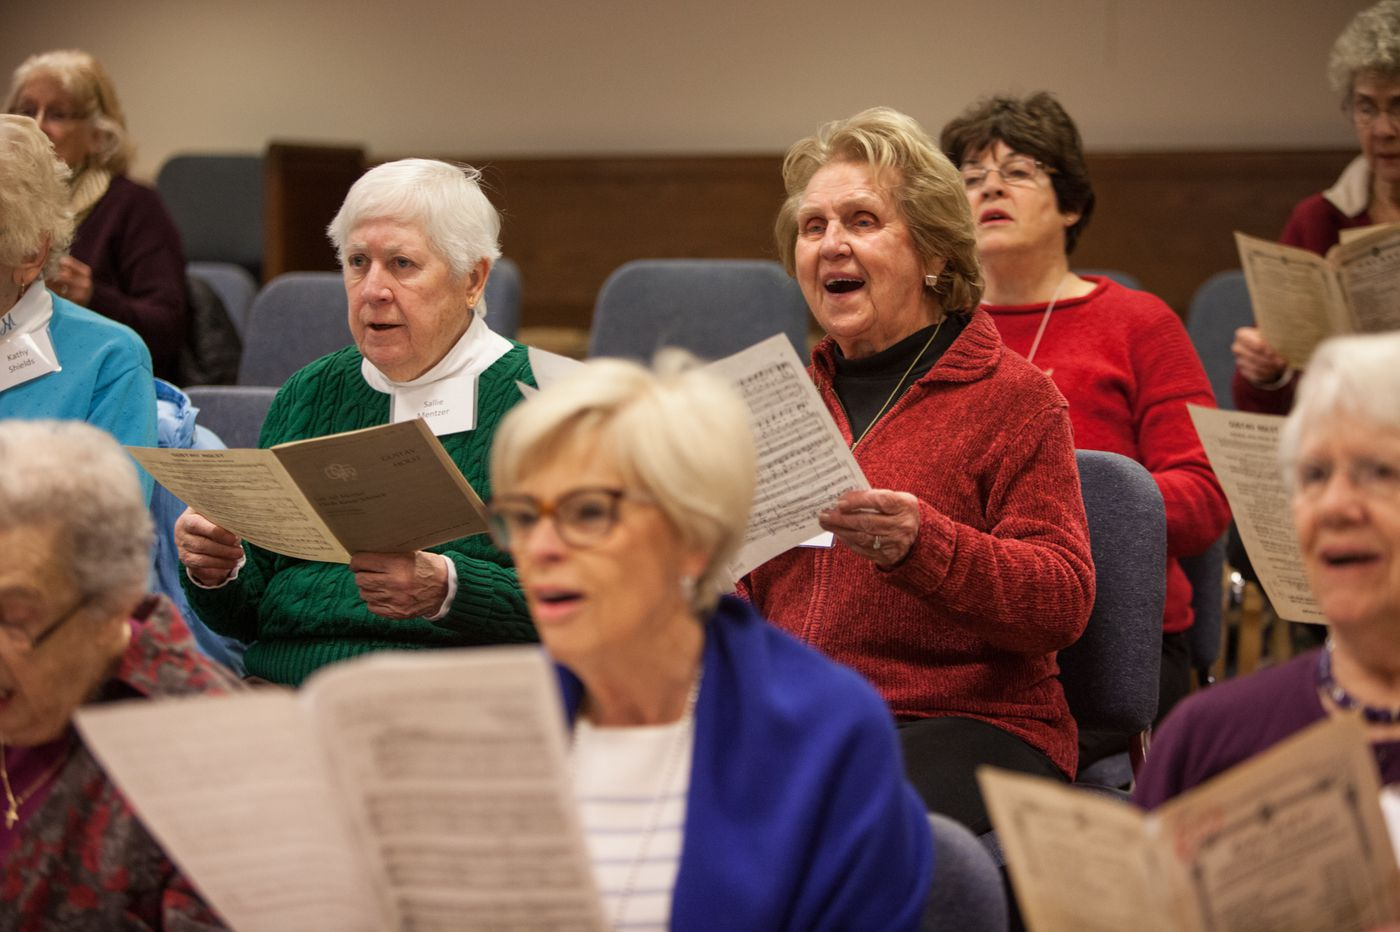 Singing in a choir may be one key to health, happiness for older adults